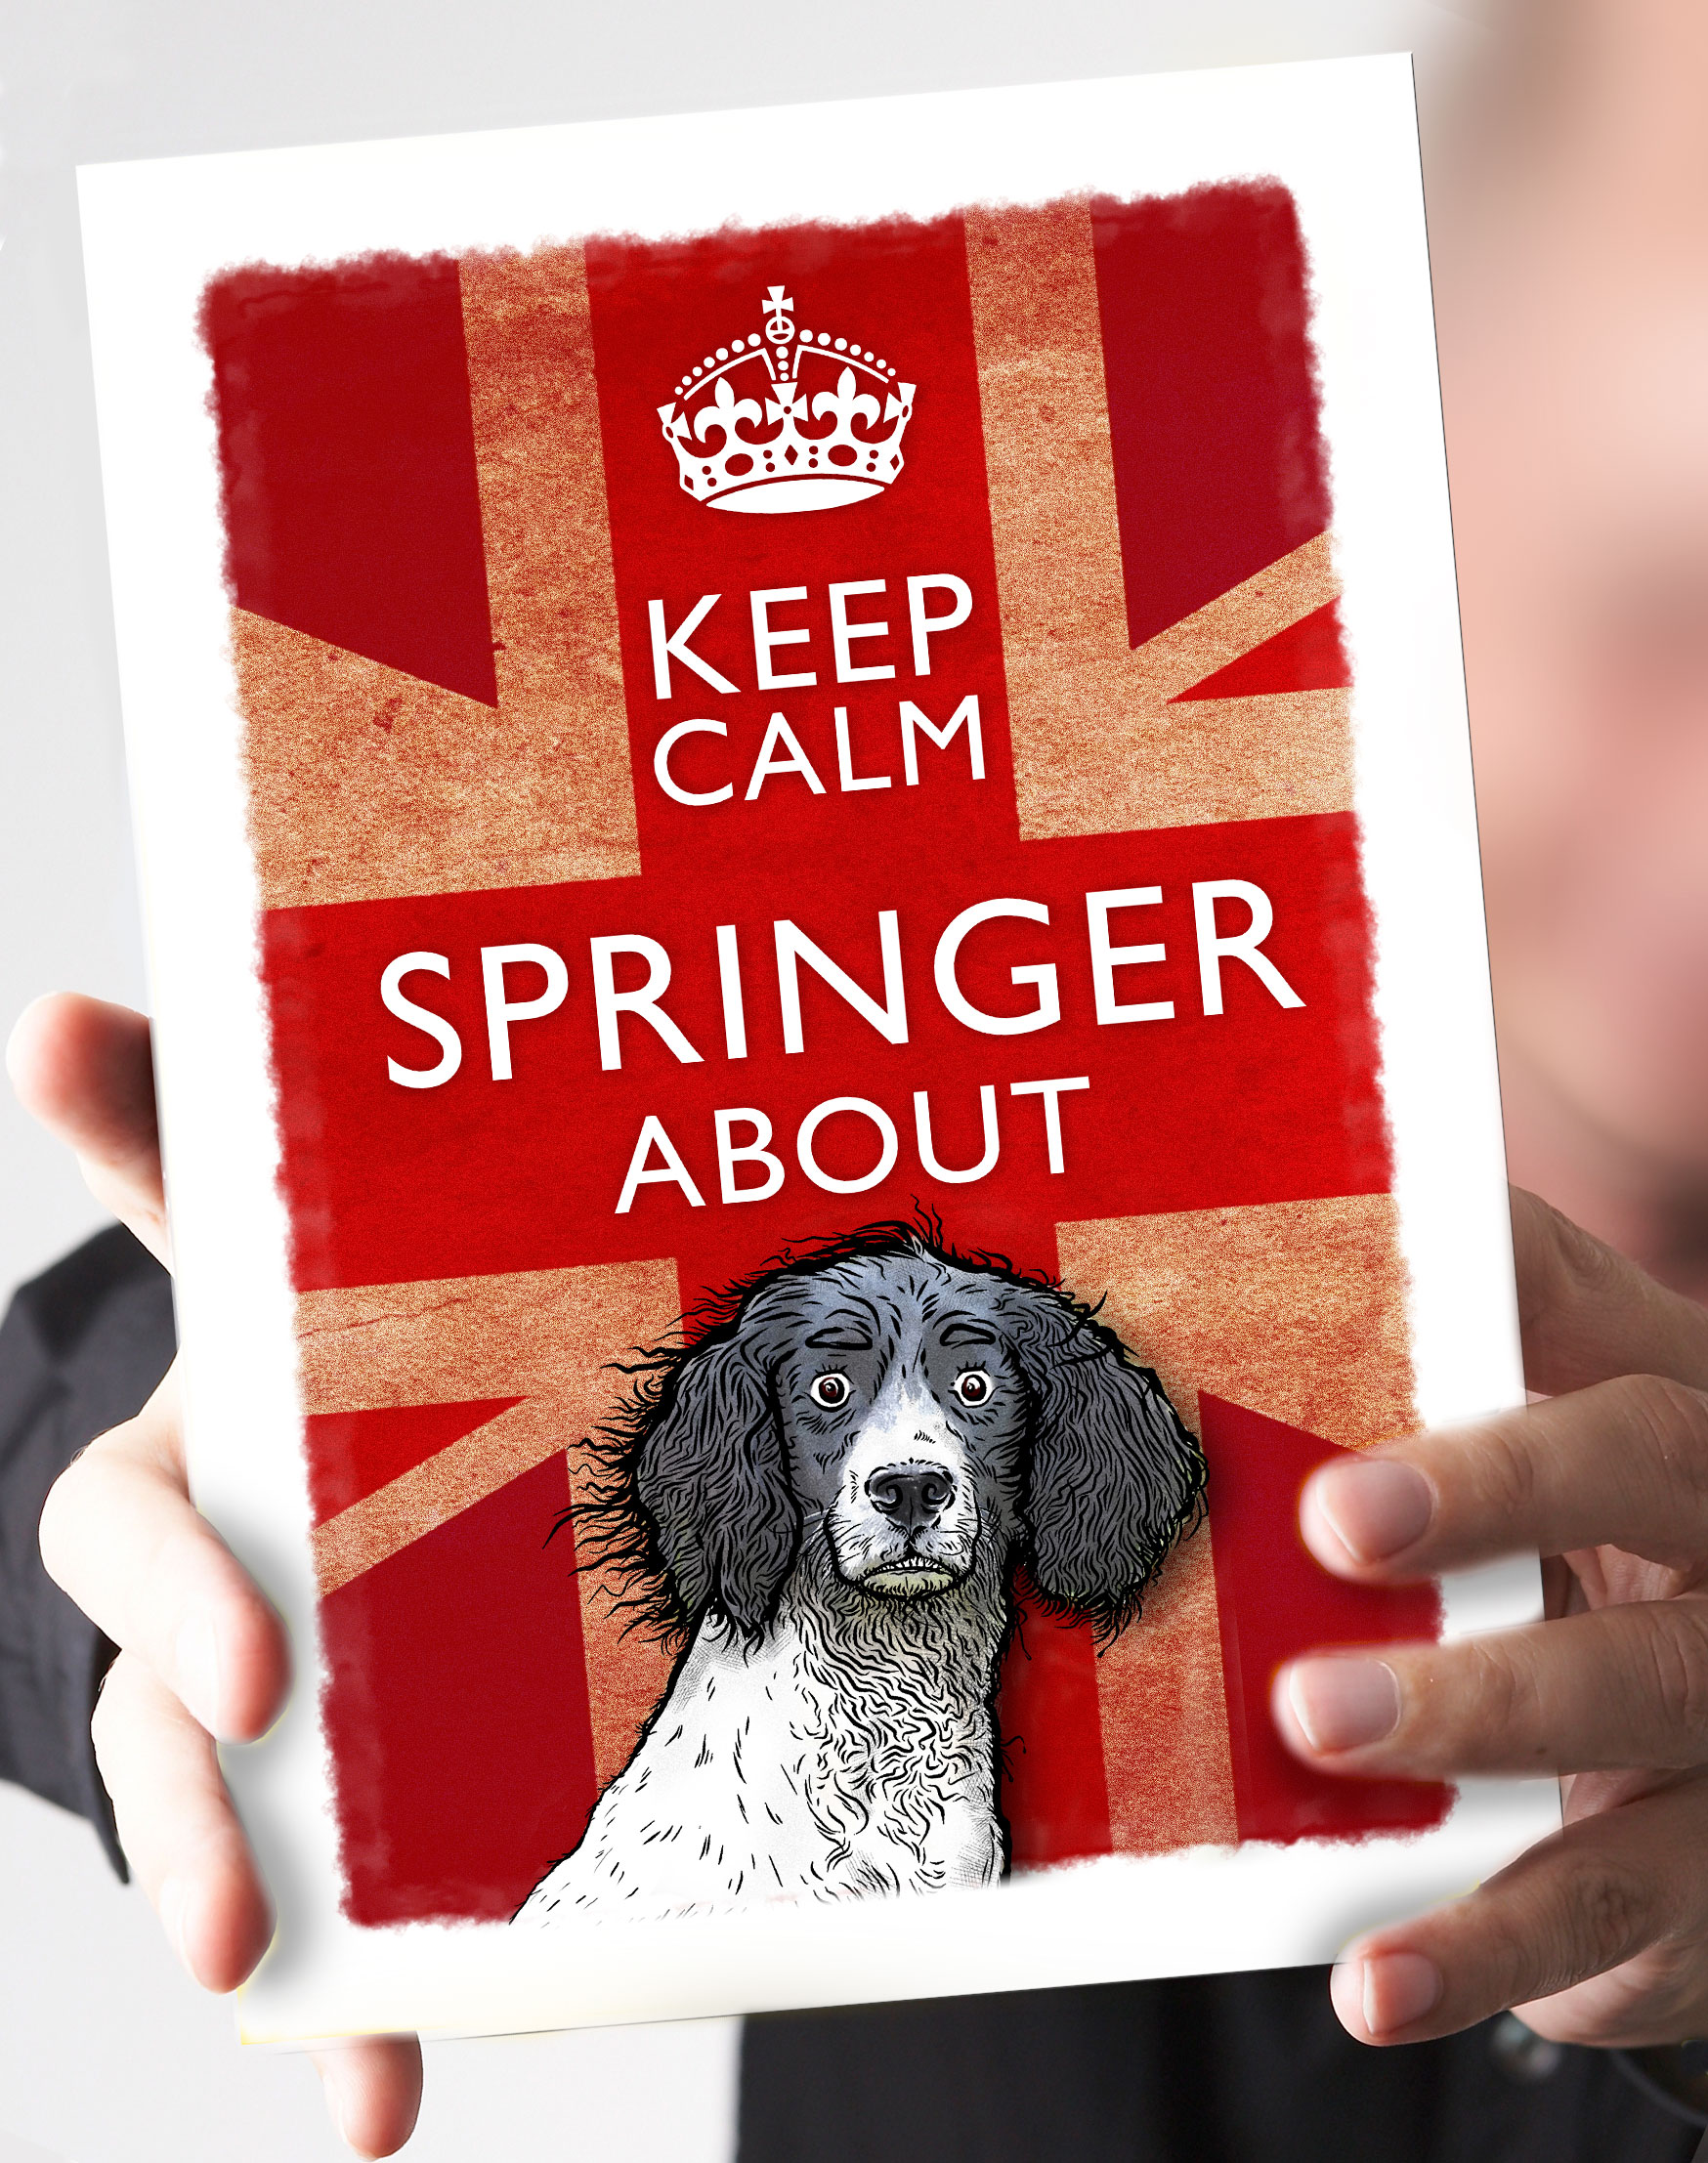 27-Keep_Calm_Springer_black_and_white_springer